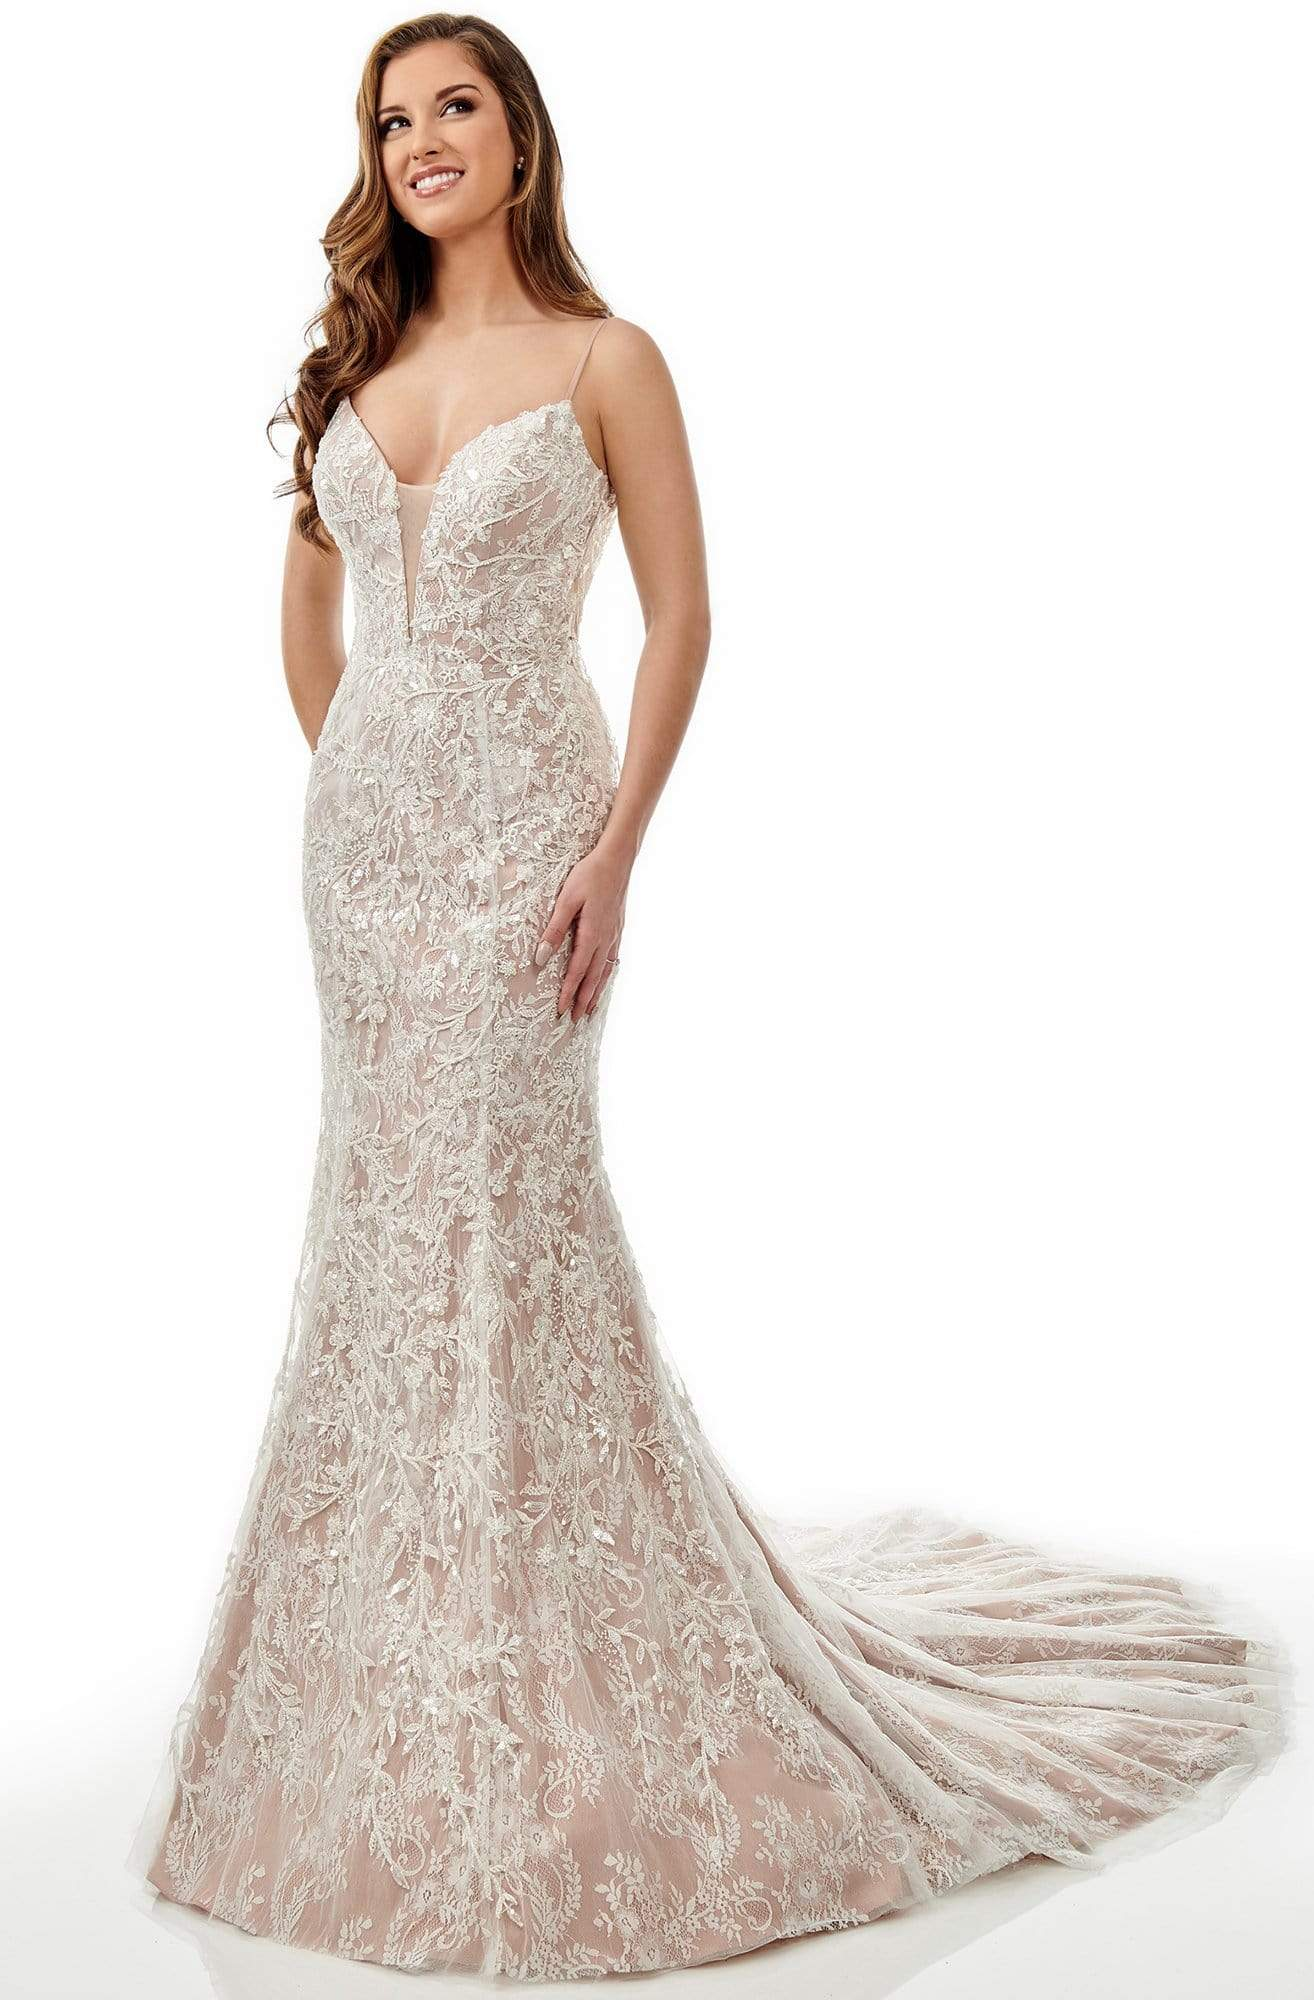 Lo'Adoro Bridal By Rachel Allan - M759 Beaded Lace Tulle Mermaid Gown from Rachel Allan